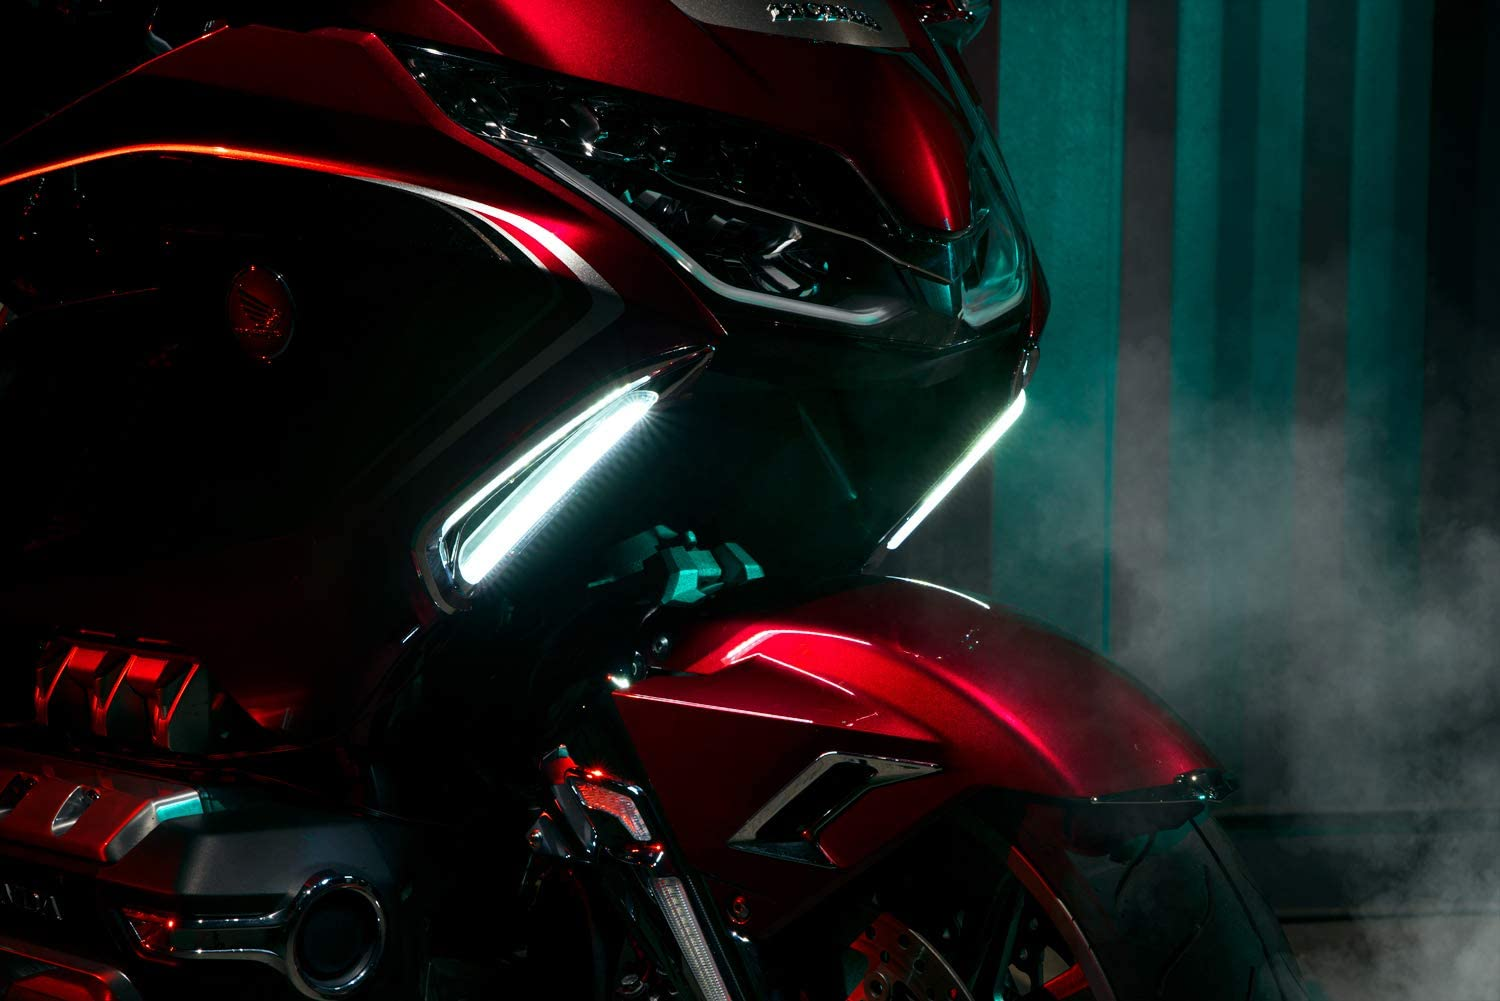 TWINART Lighted Vent Trim for Gold Wing